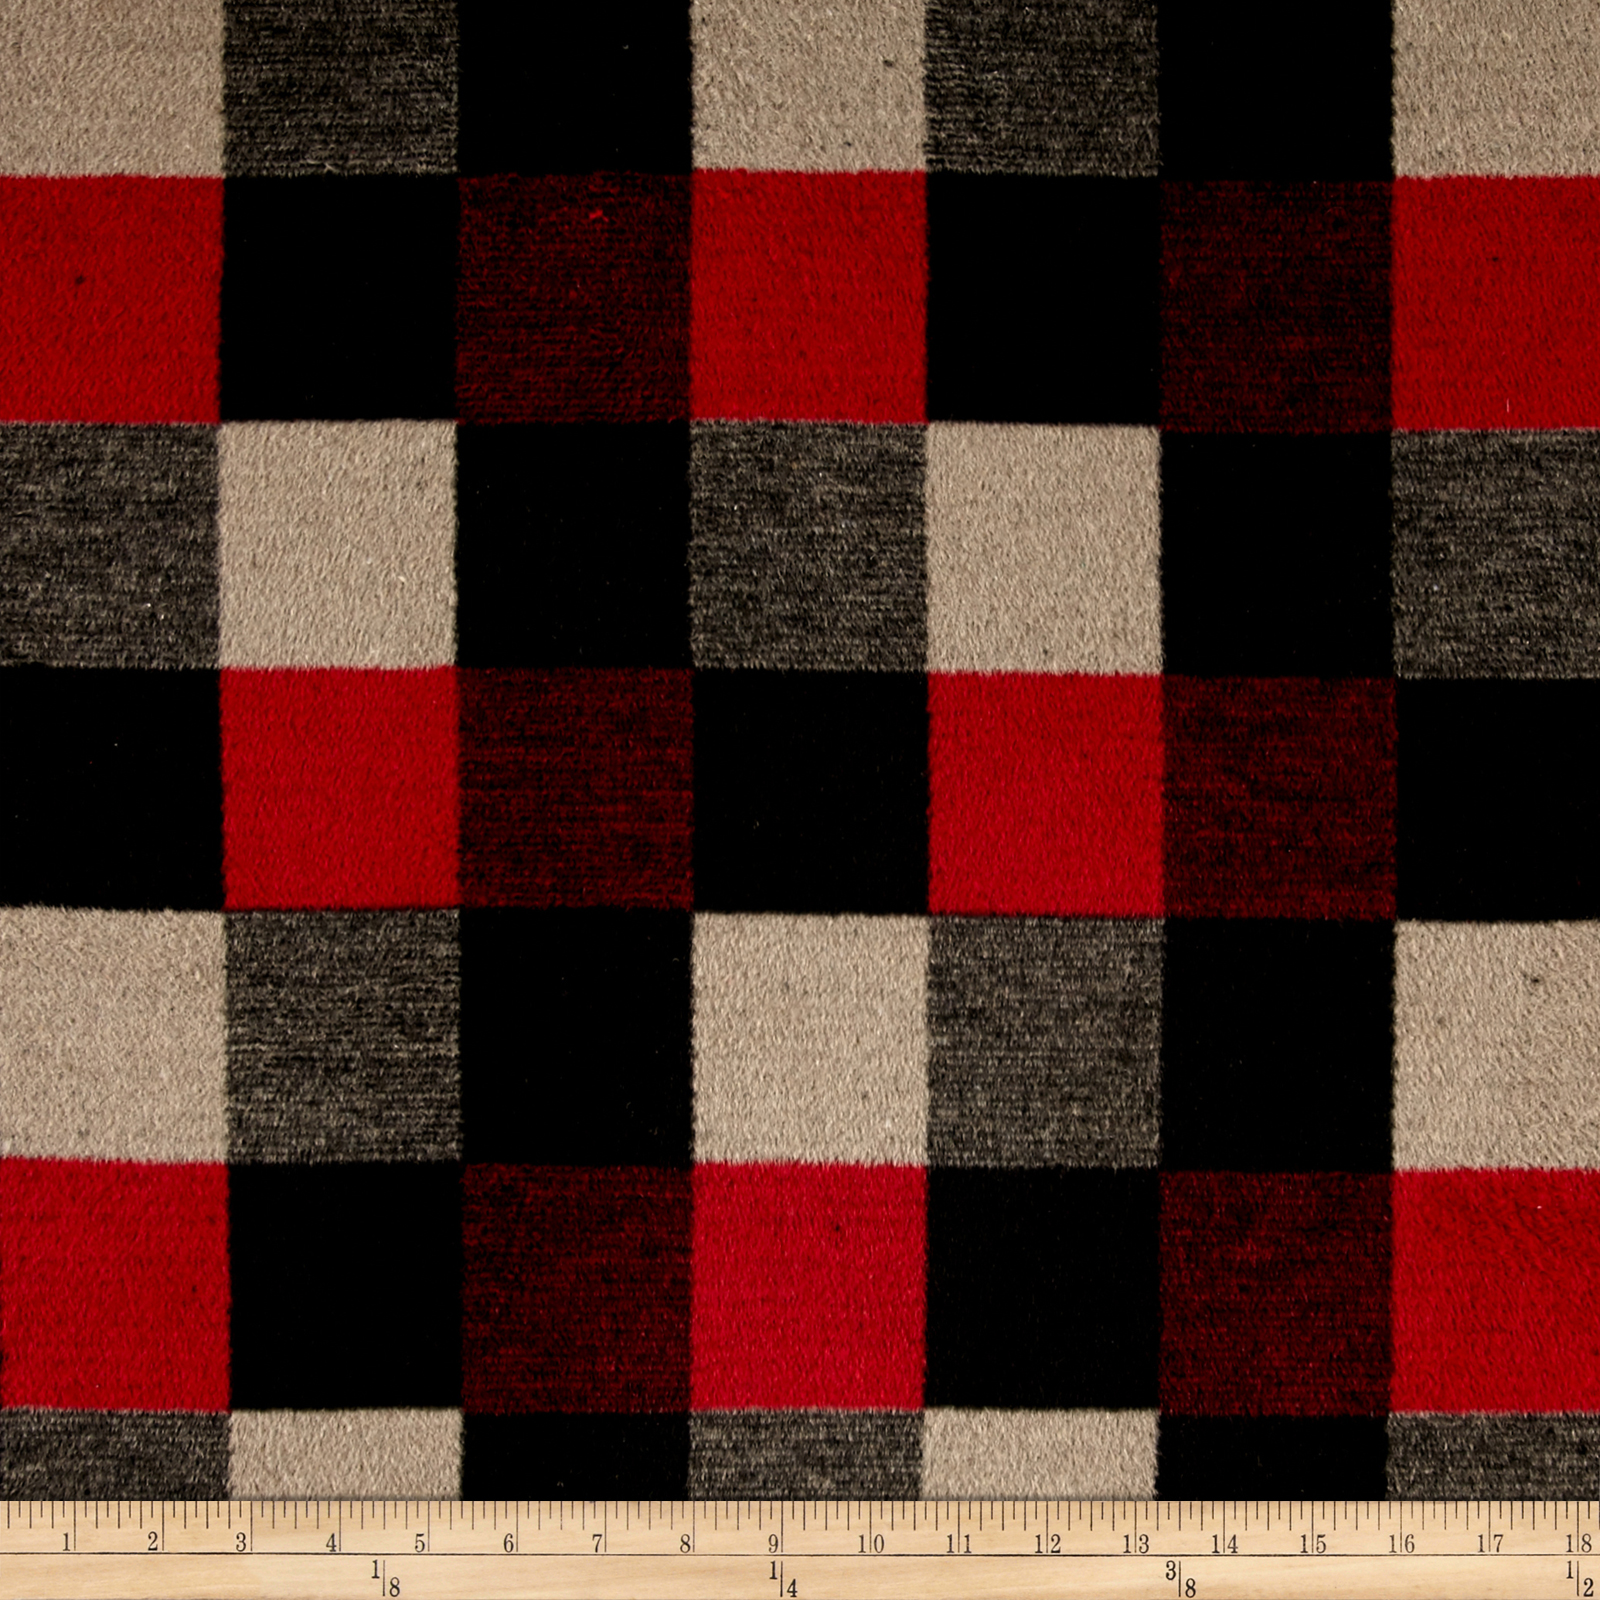 Brushed Wool Blend Check Red/Black/Tan Fabric by Fabric Merchants in USA